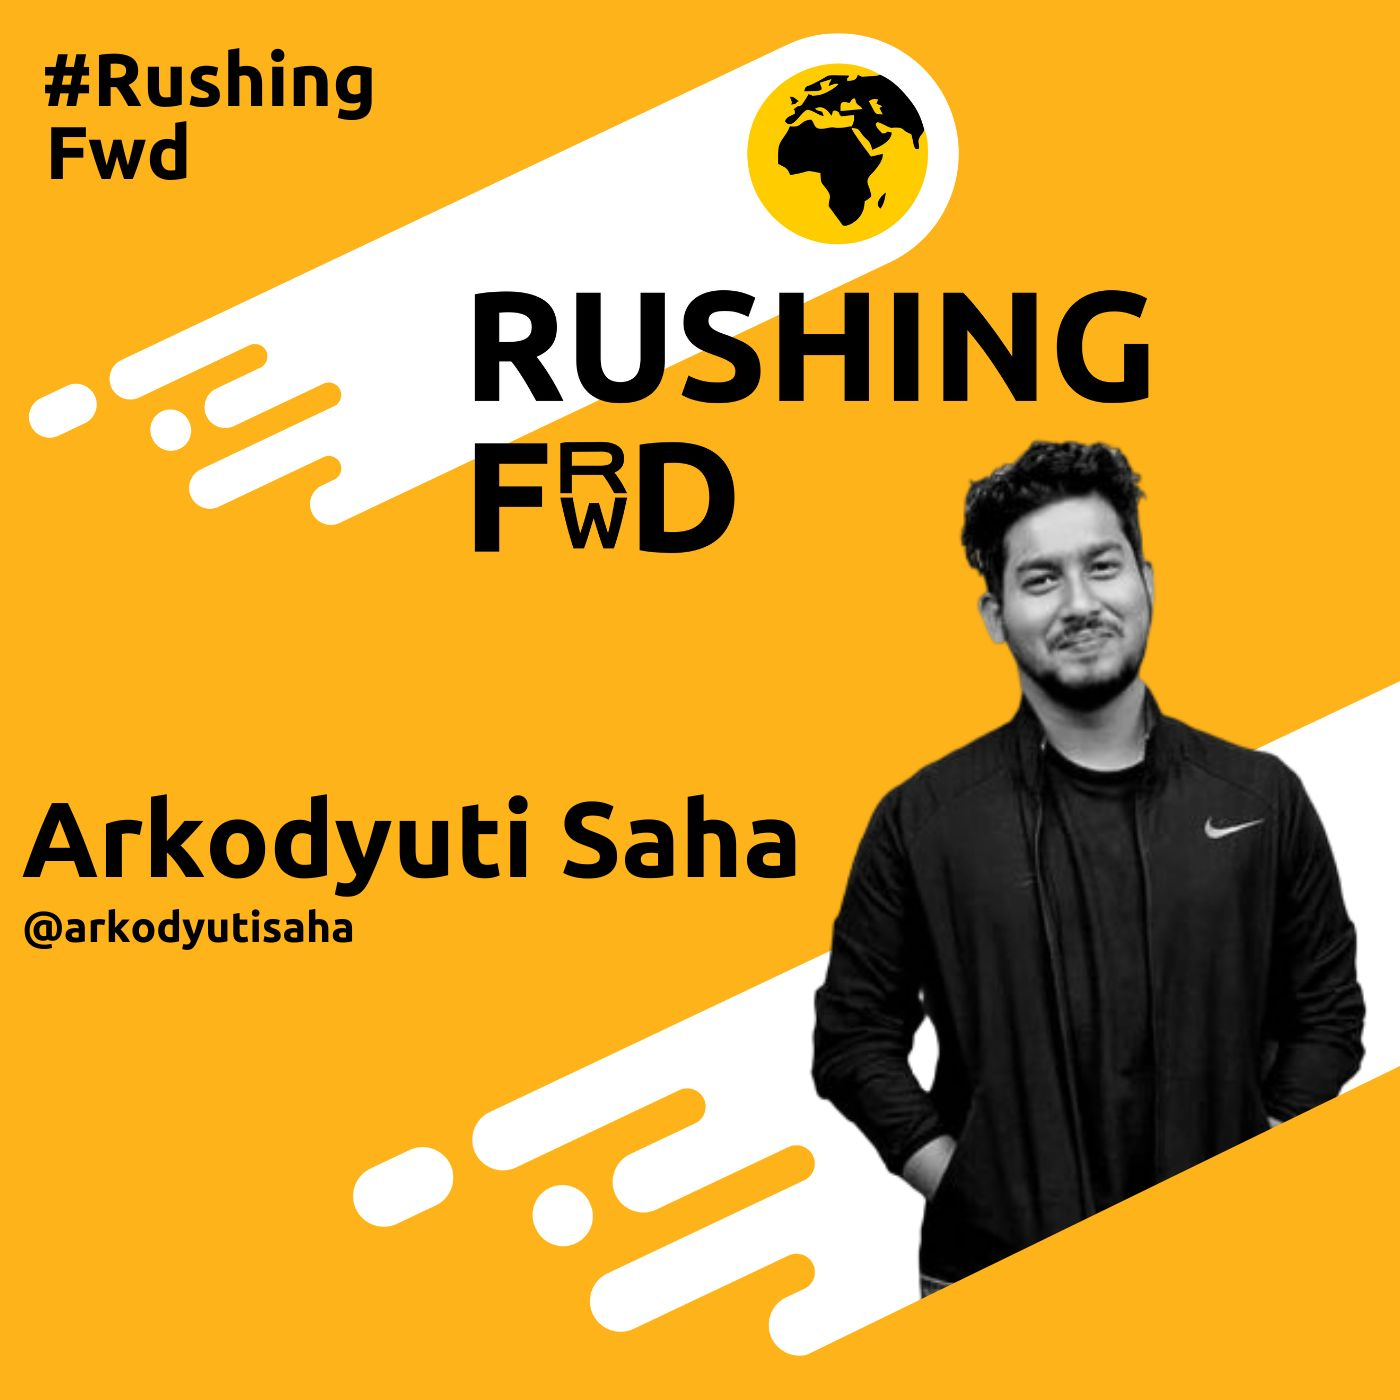 Arkodyuti Saha: Developer Relations, Hackathons and Single Malts